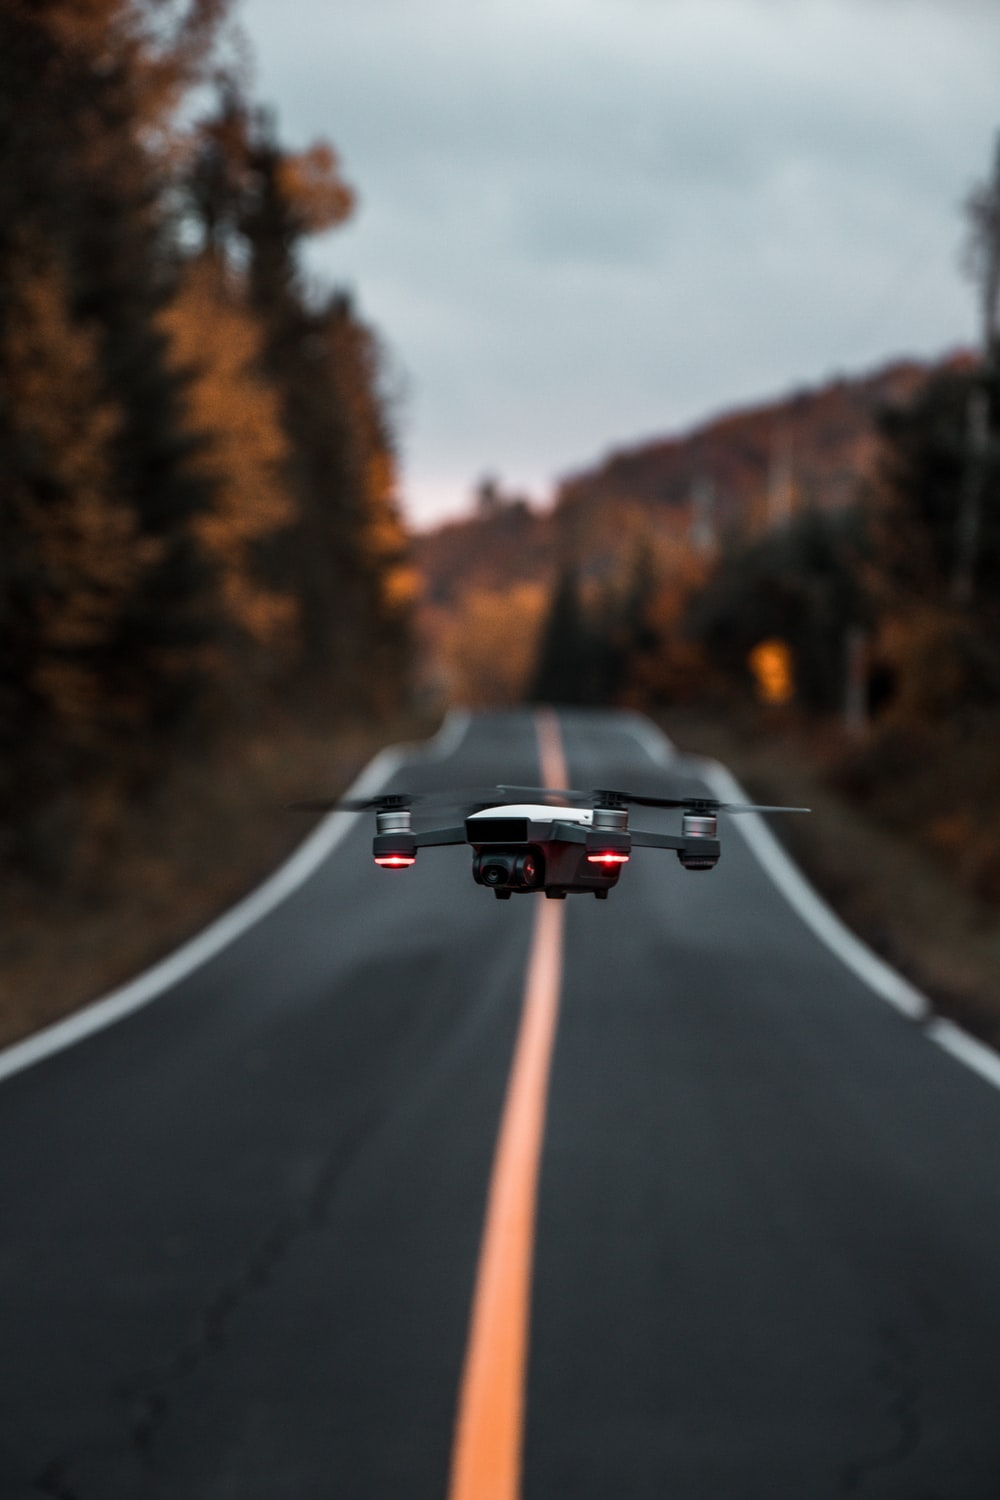 black and red drone in the middle of road near trees